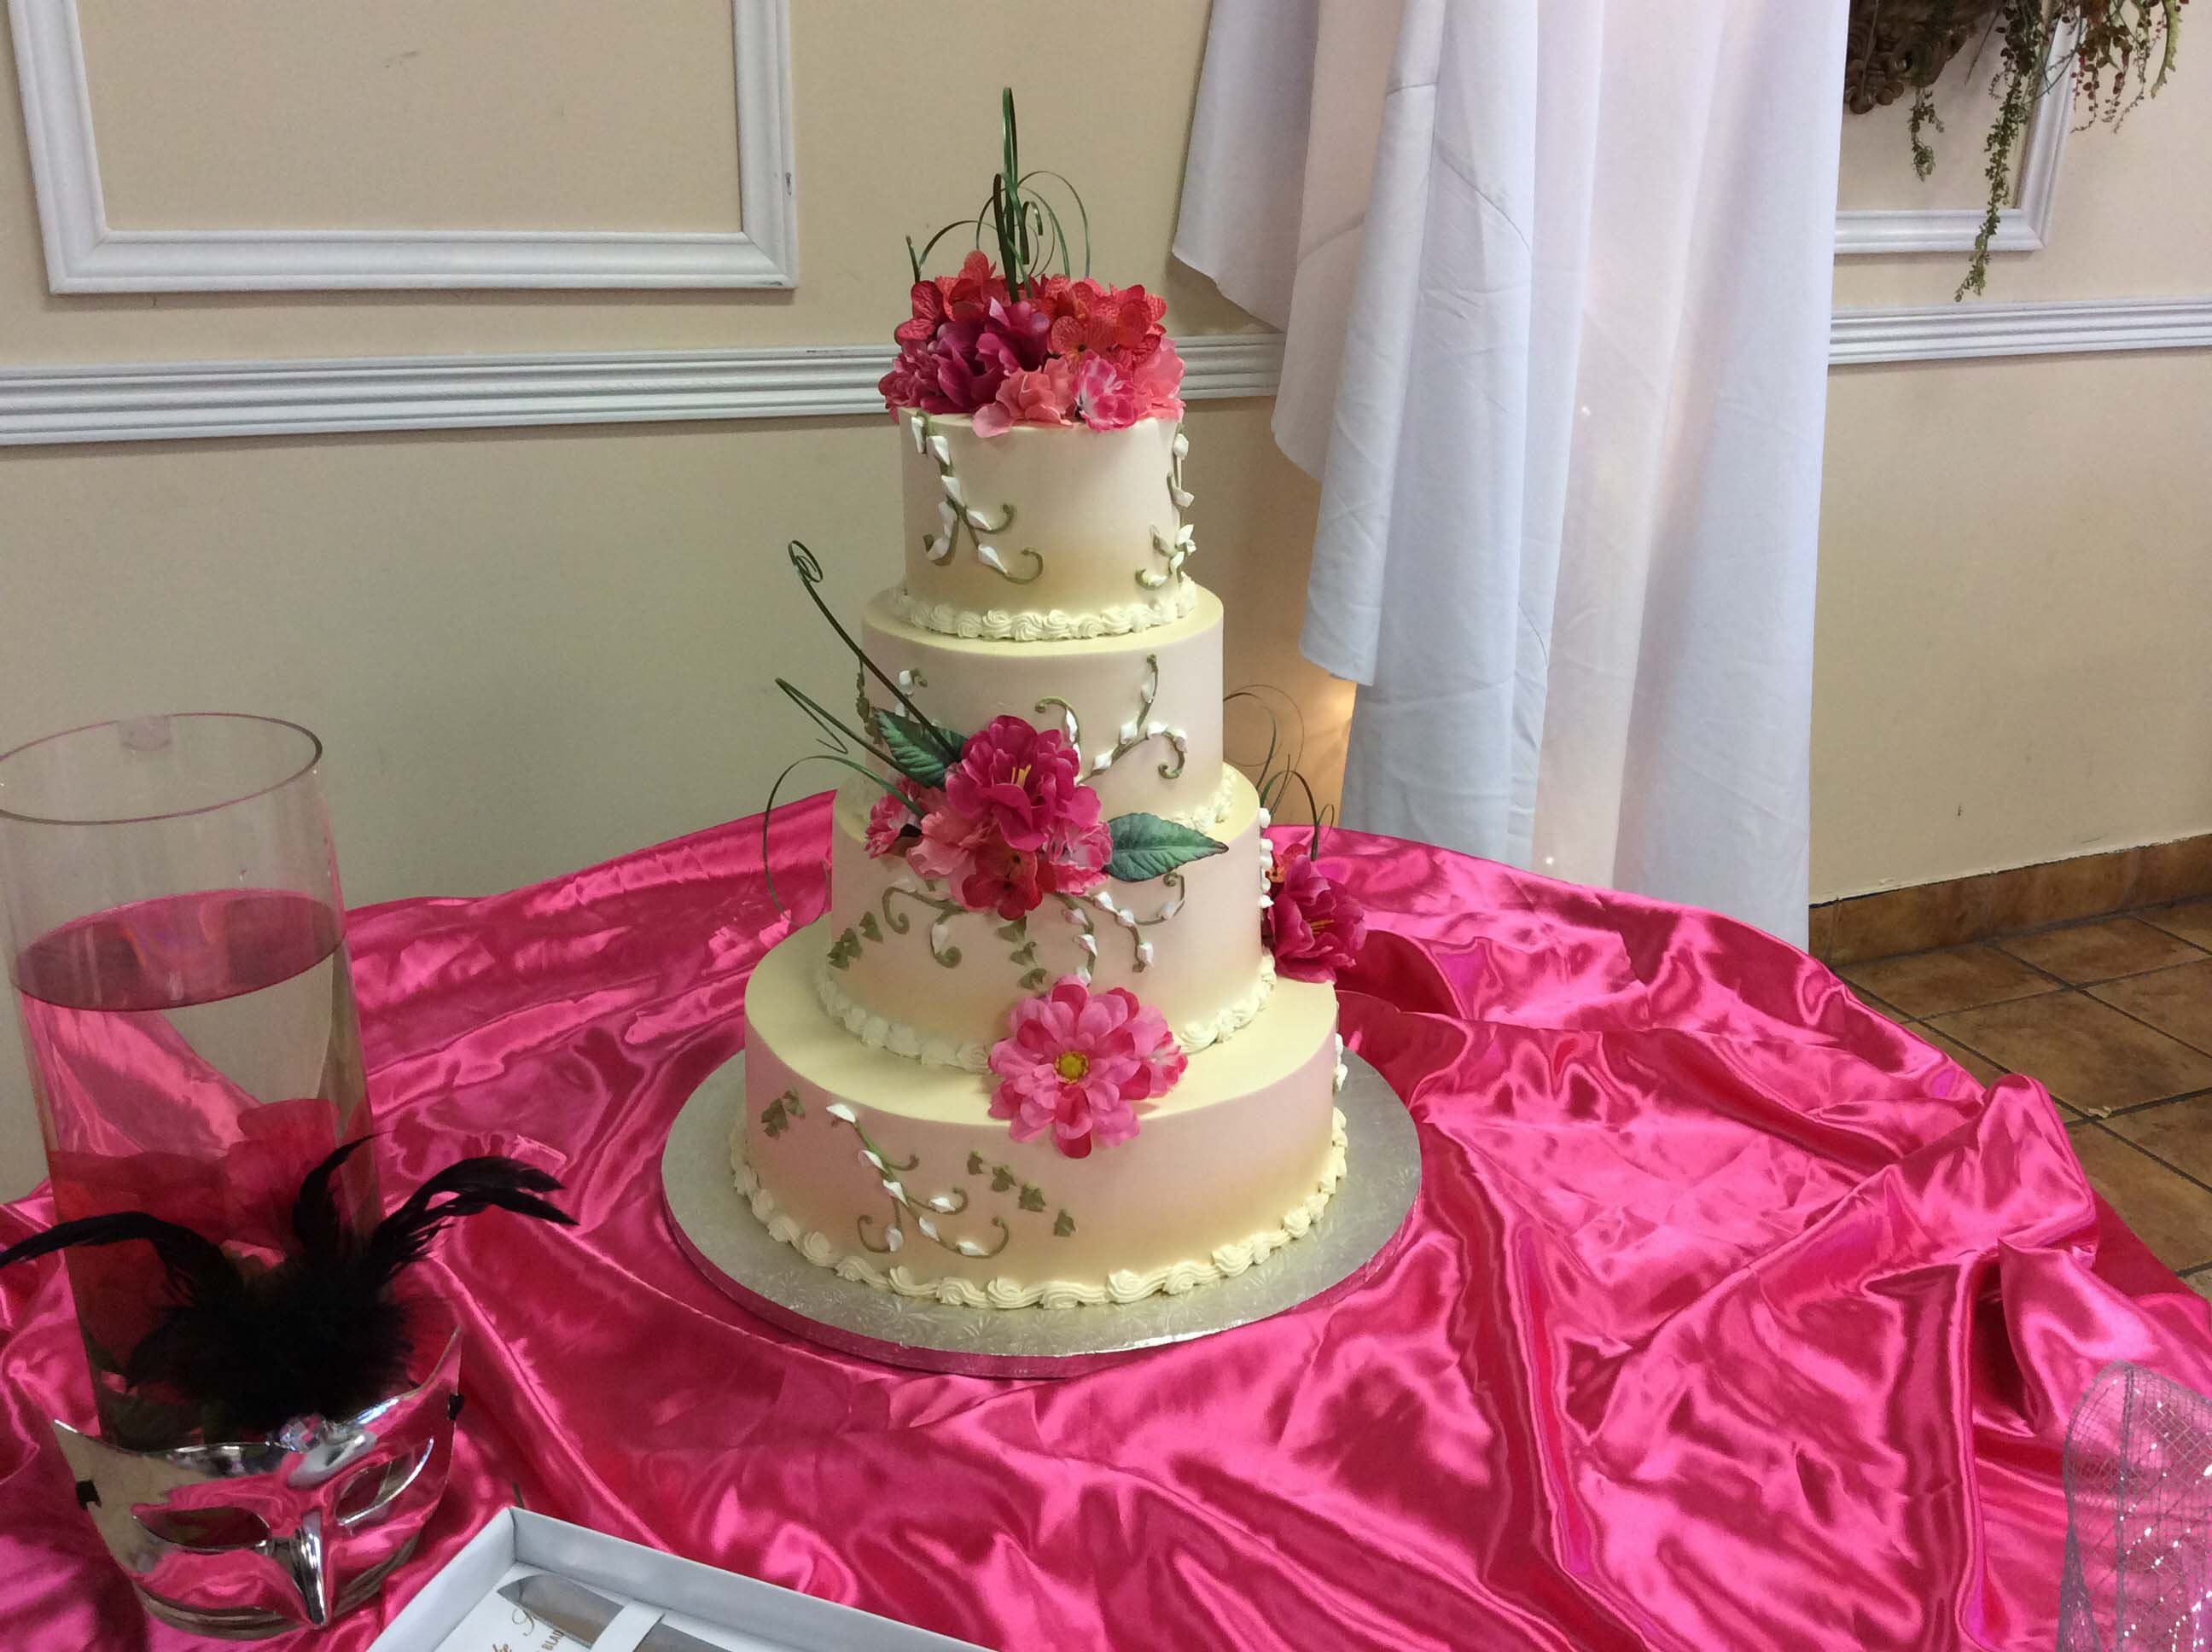 Three-Tier Cake With Pink Flowers